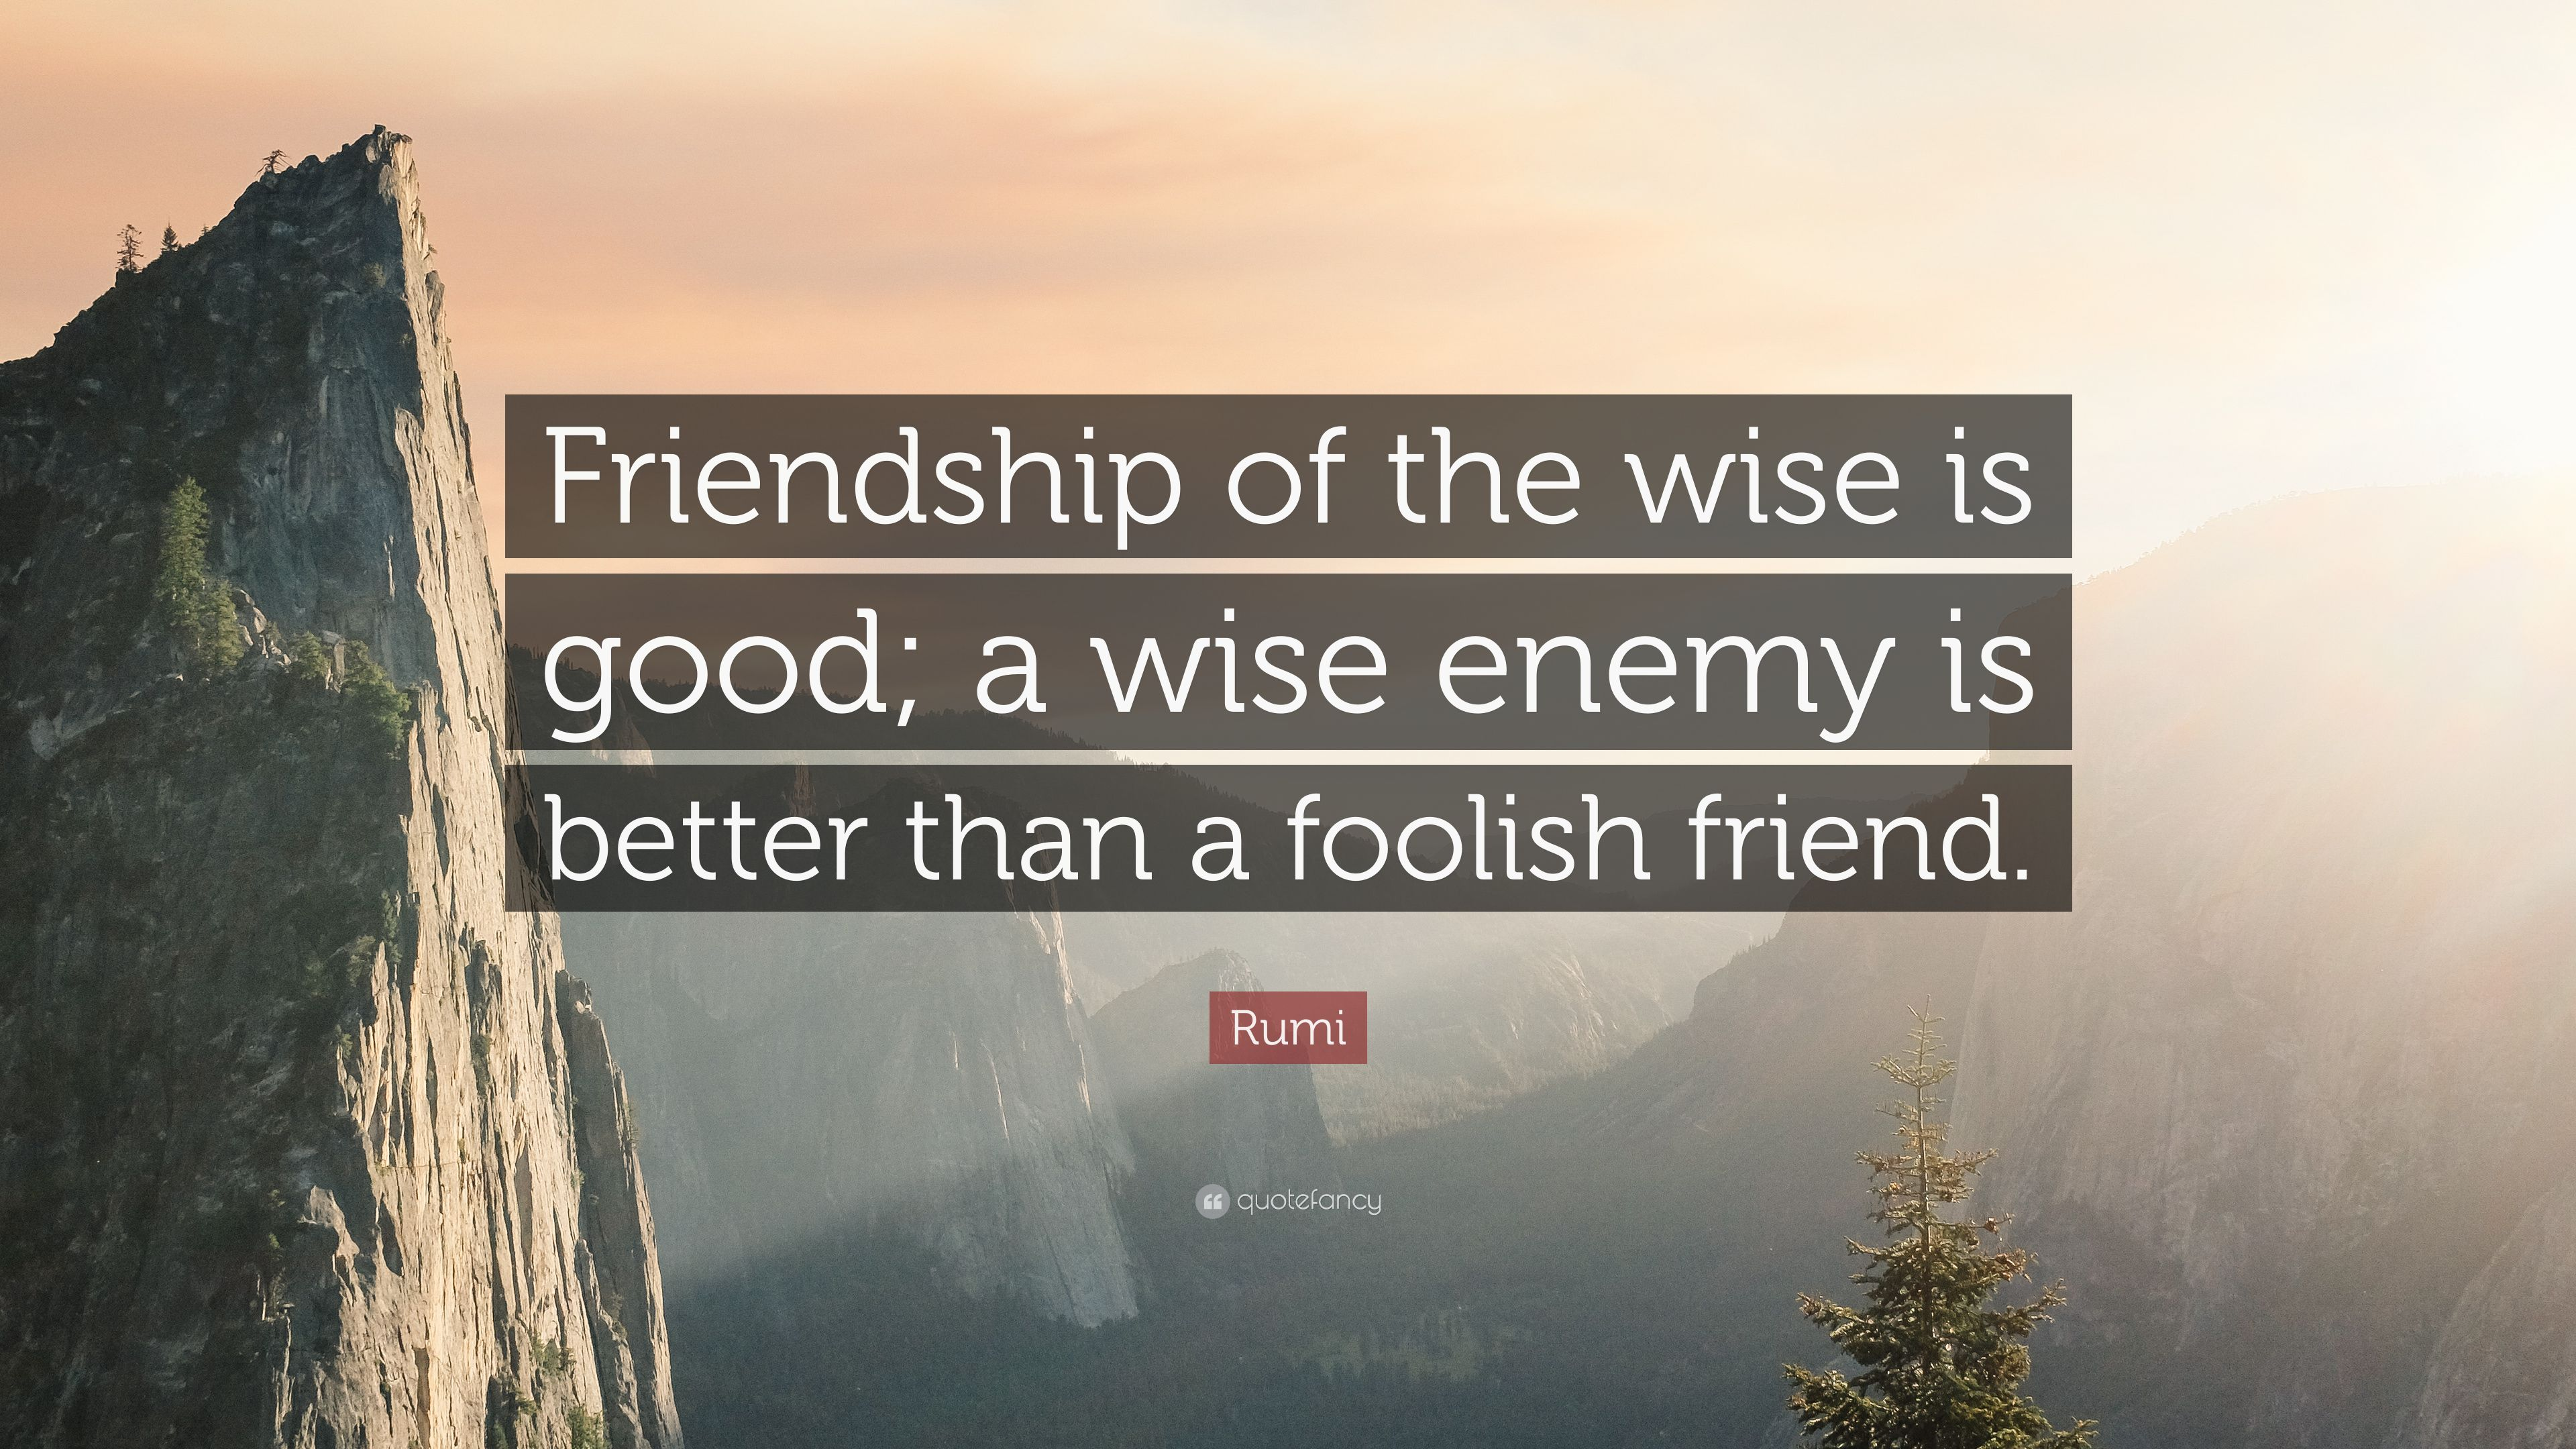 Rumi Quotes About Friendship Wise Sayings About Good Friends Best Wise Quotes And Humorgood